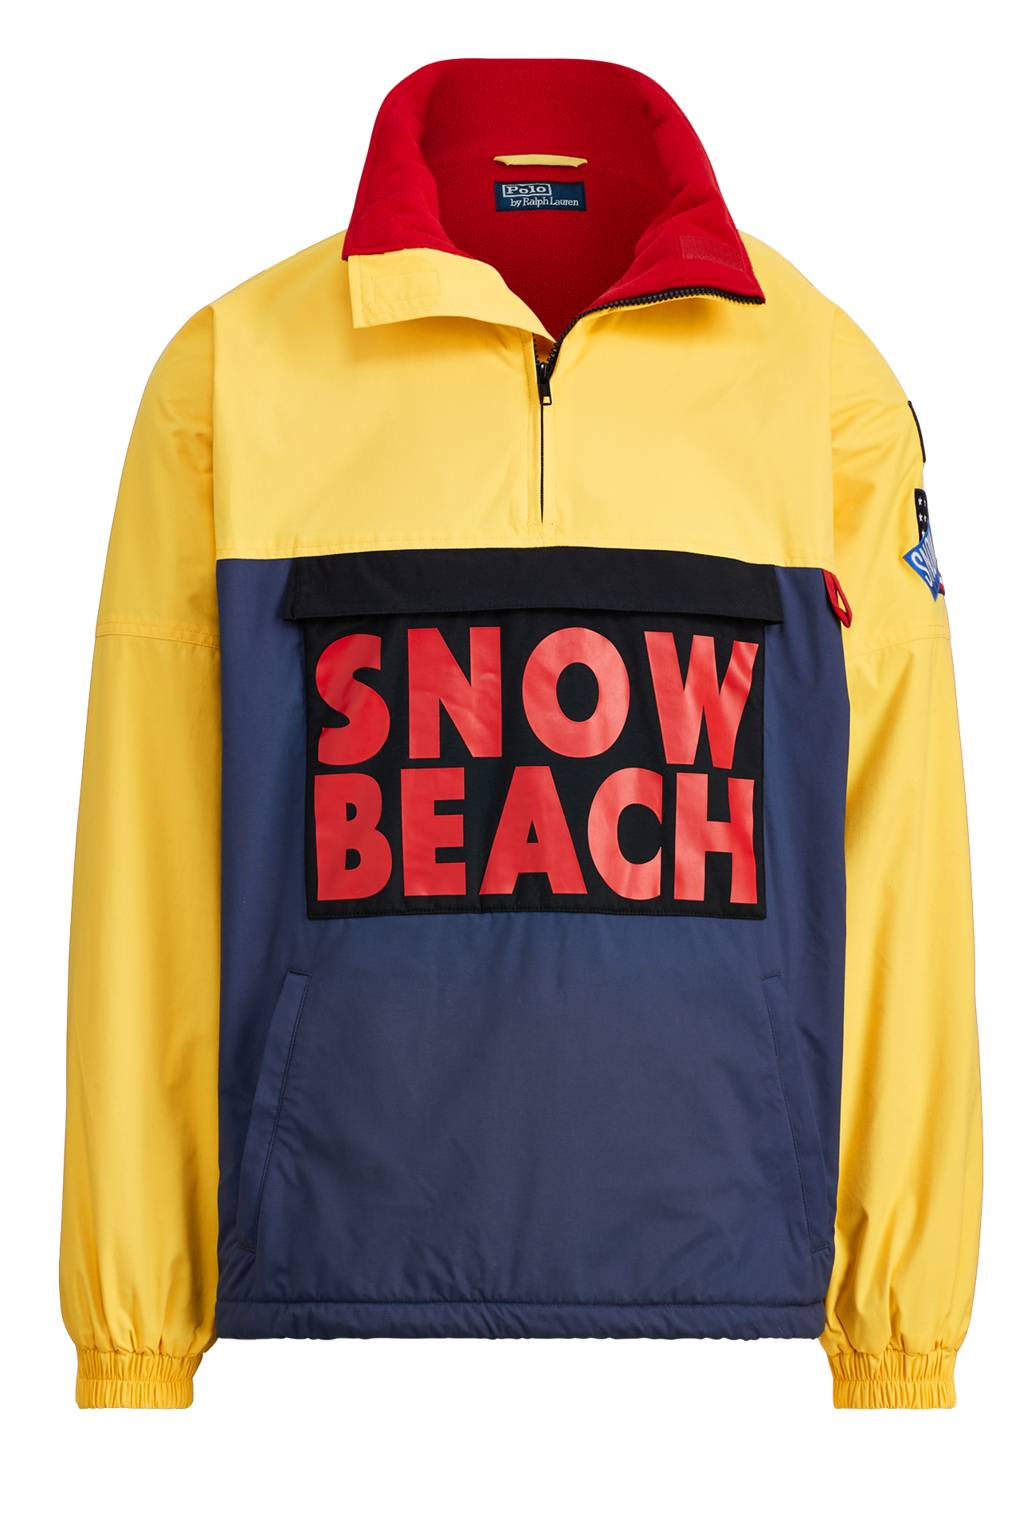 1a1388bf067 Every item in the Ralph Lauren Snow Beach collection